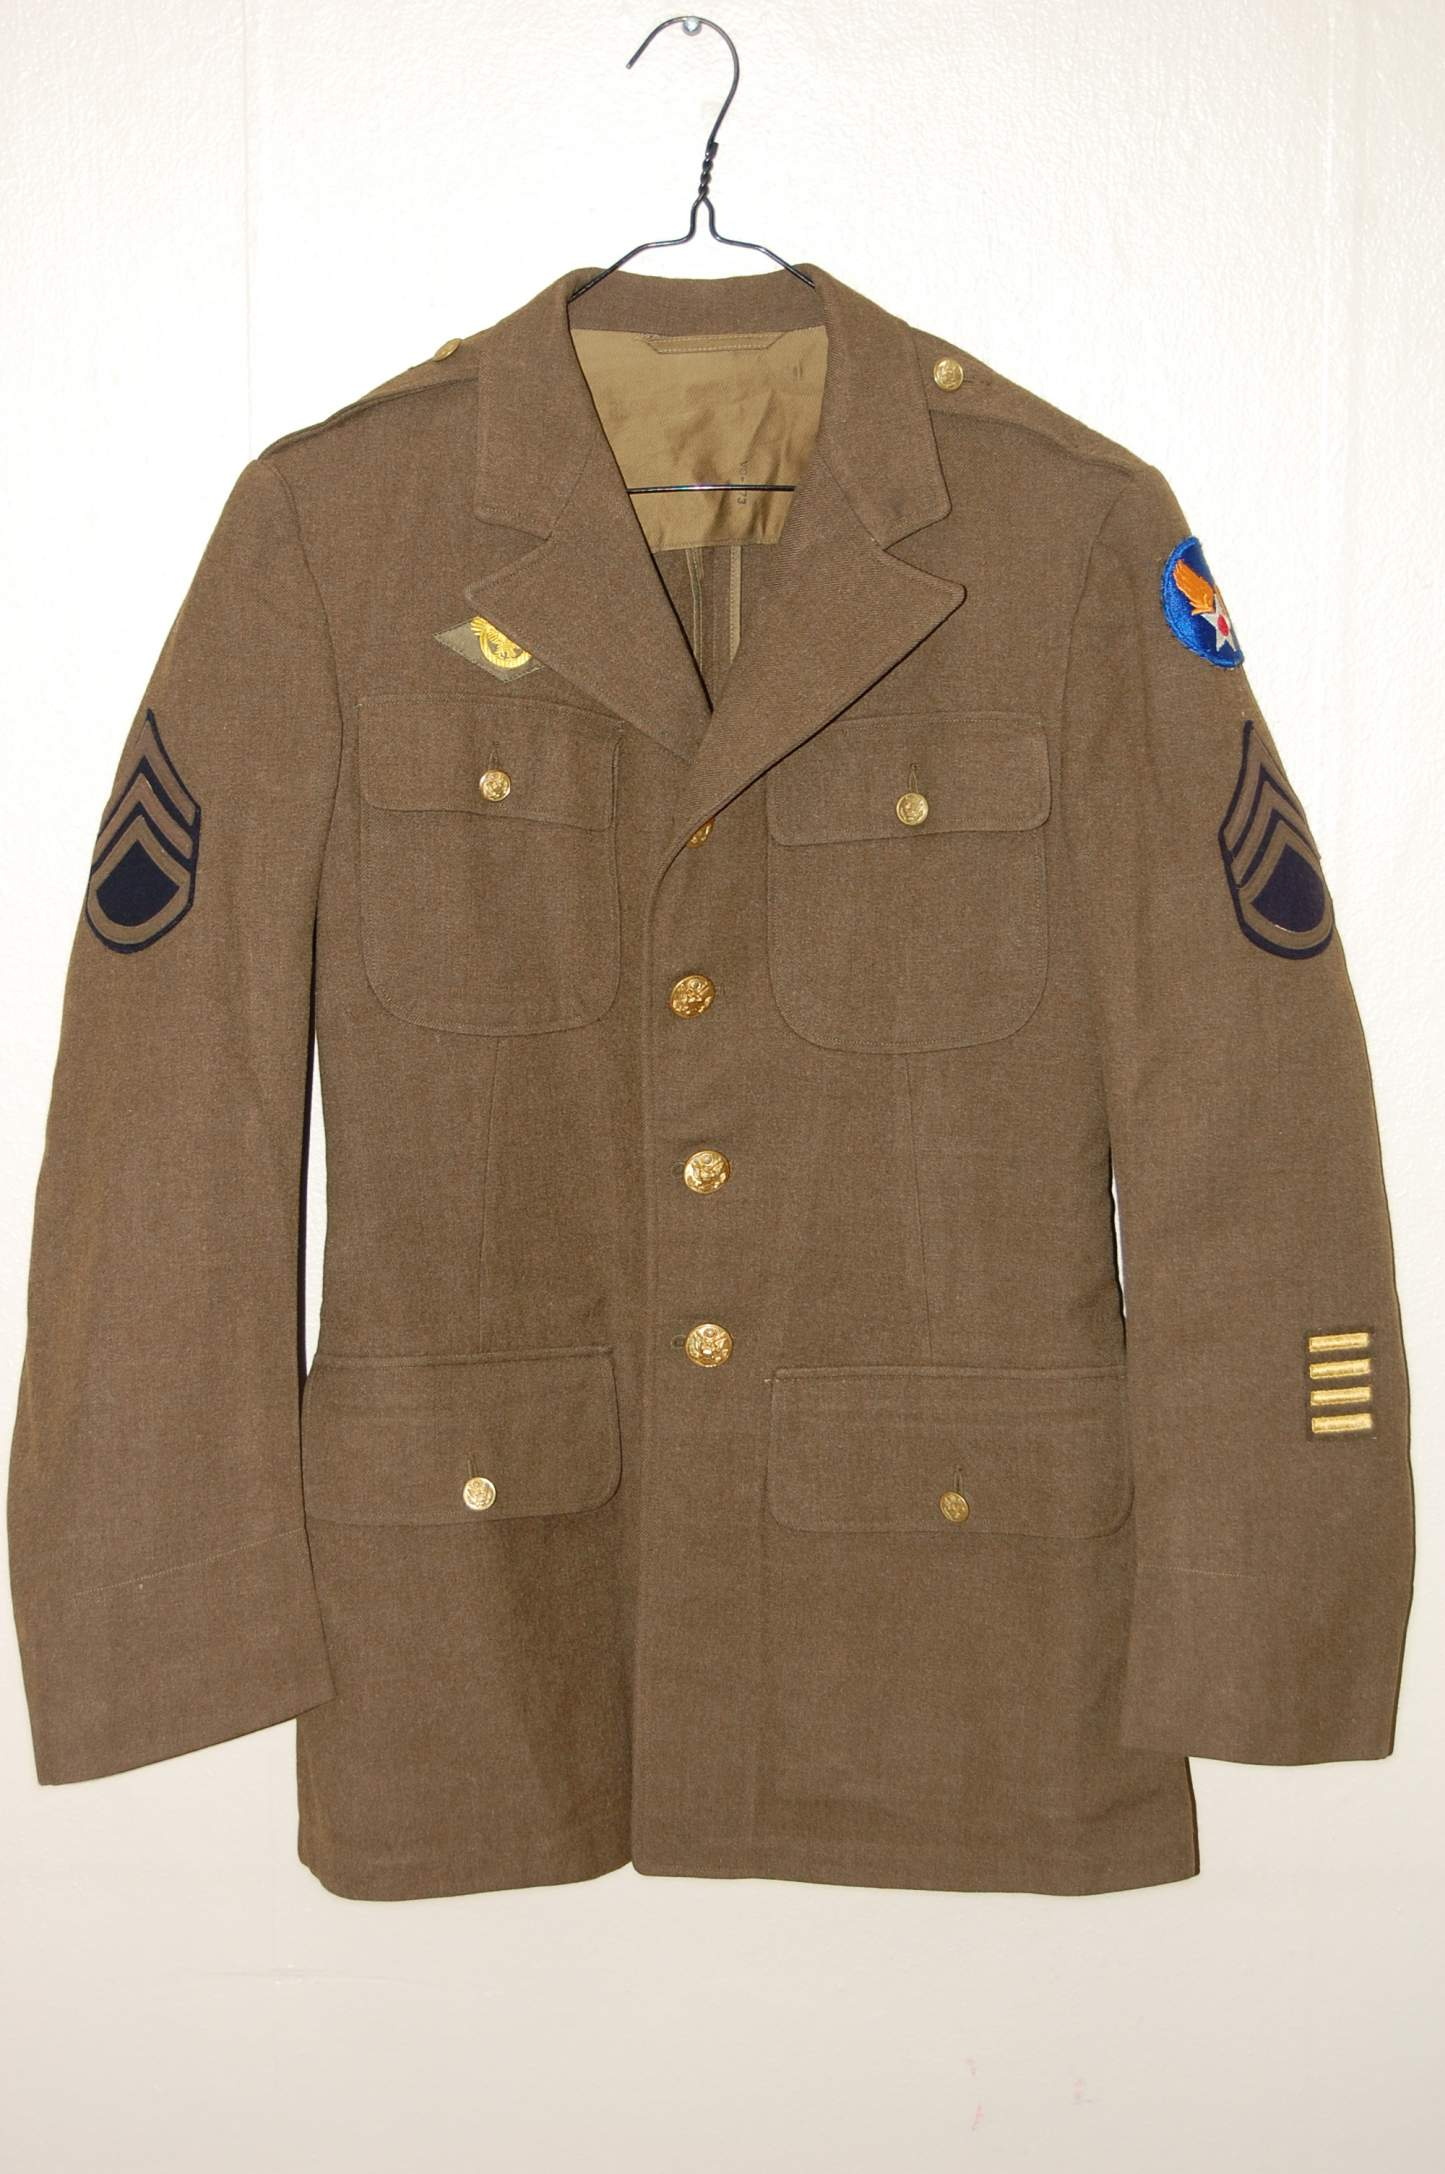 US Army Air Corps Service Uniform